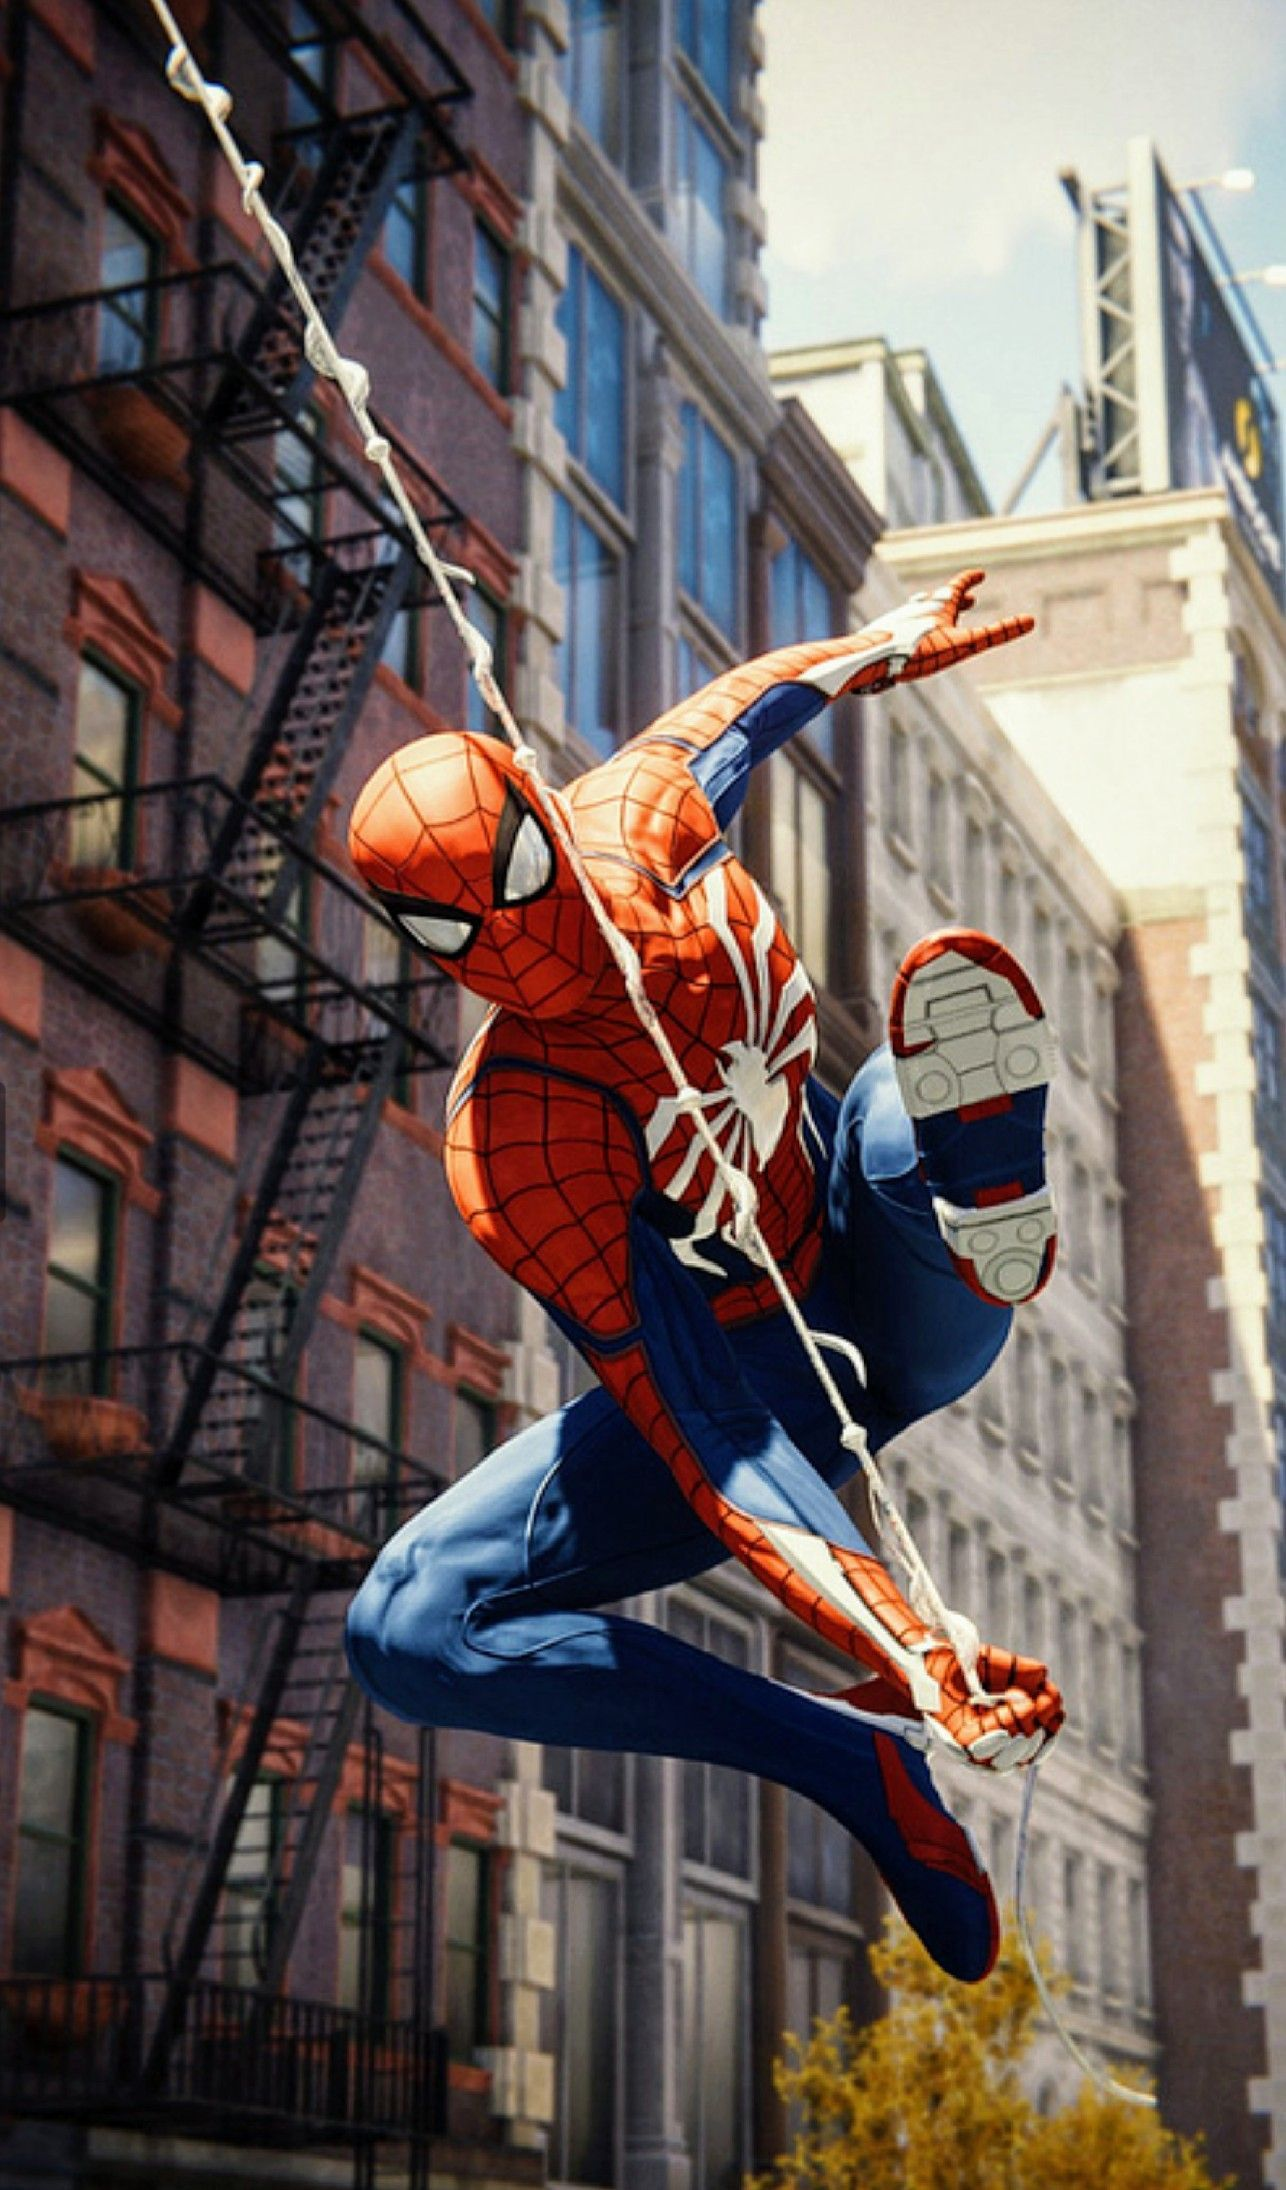 Does Spider Man Represent The Future Of Narrative Gaming Gaming Games Gamers Videogames Videogaming Spi Spiderman Spiderman Ps4 Spiderman Ps4 Wallpaper